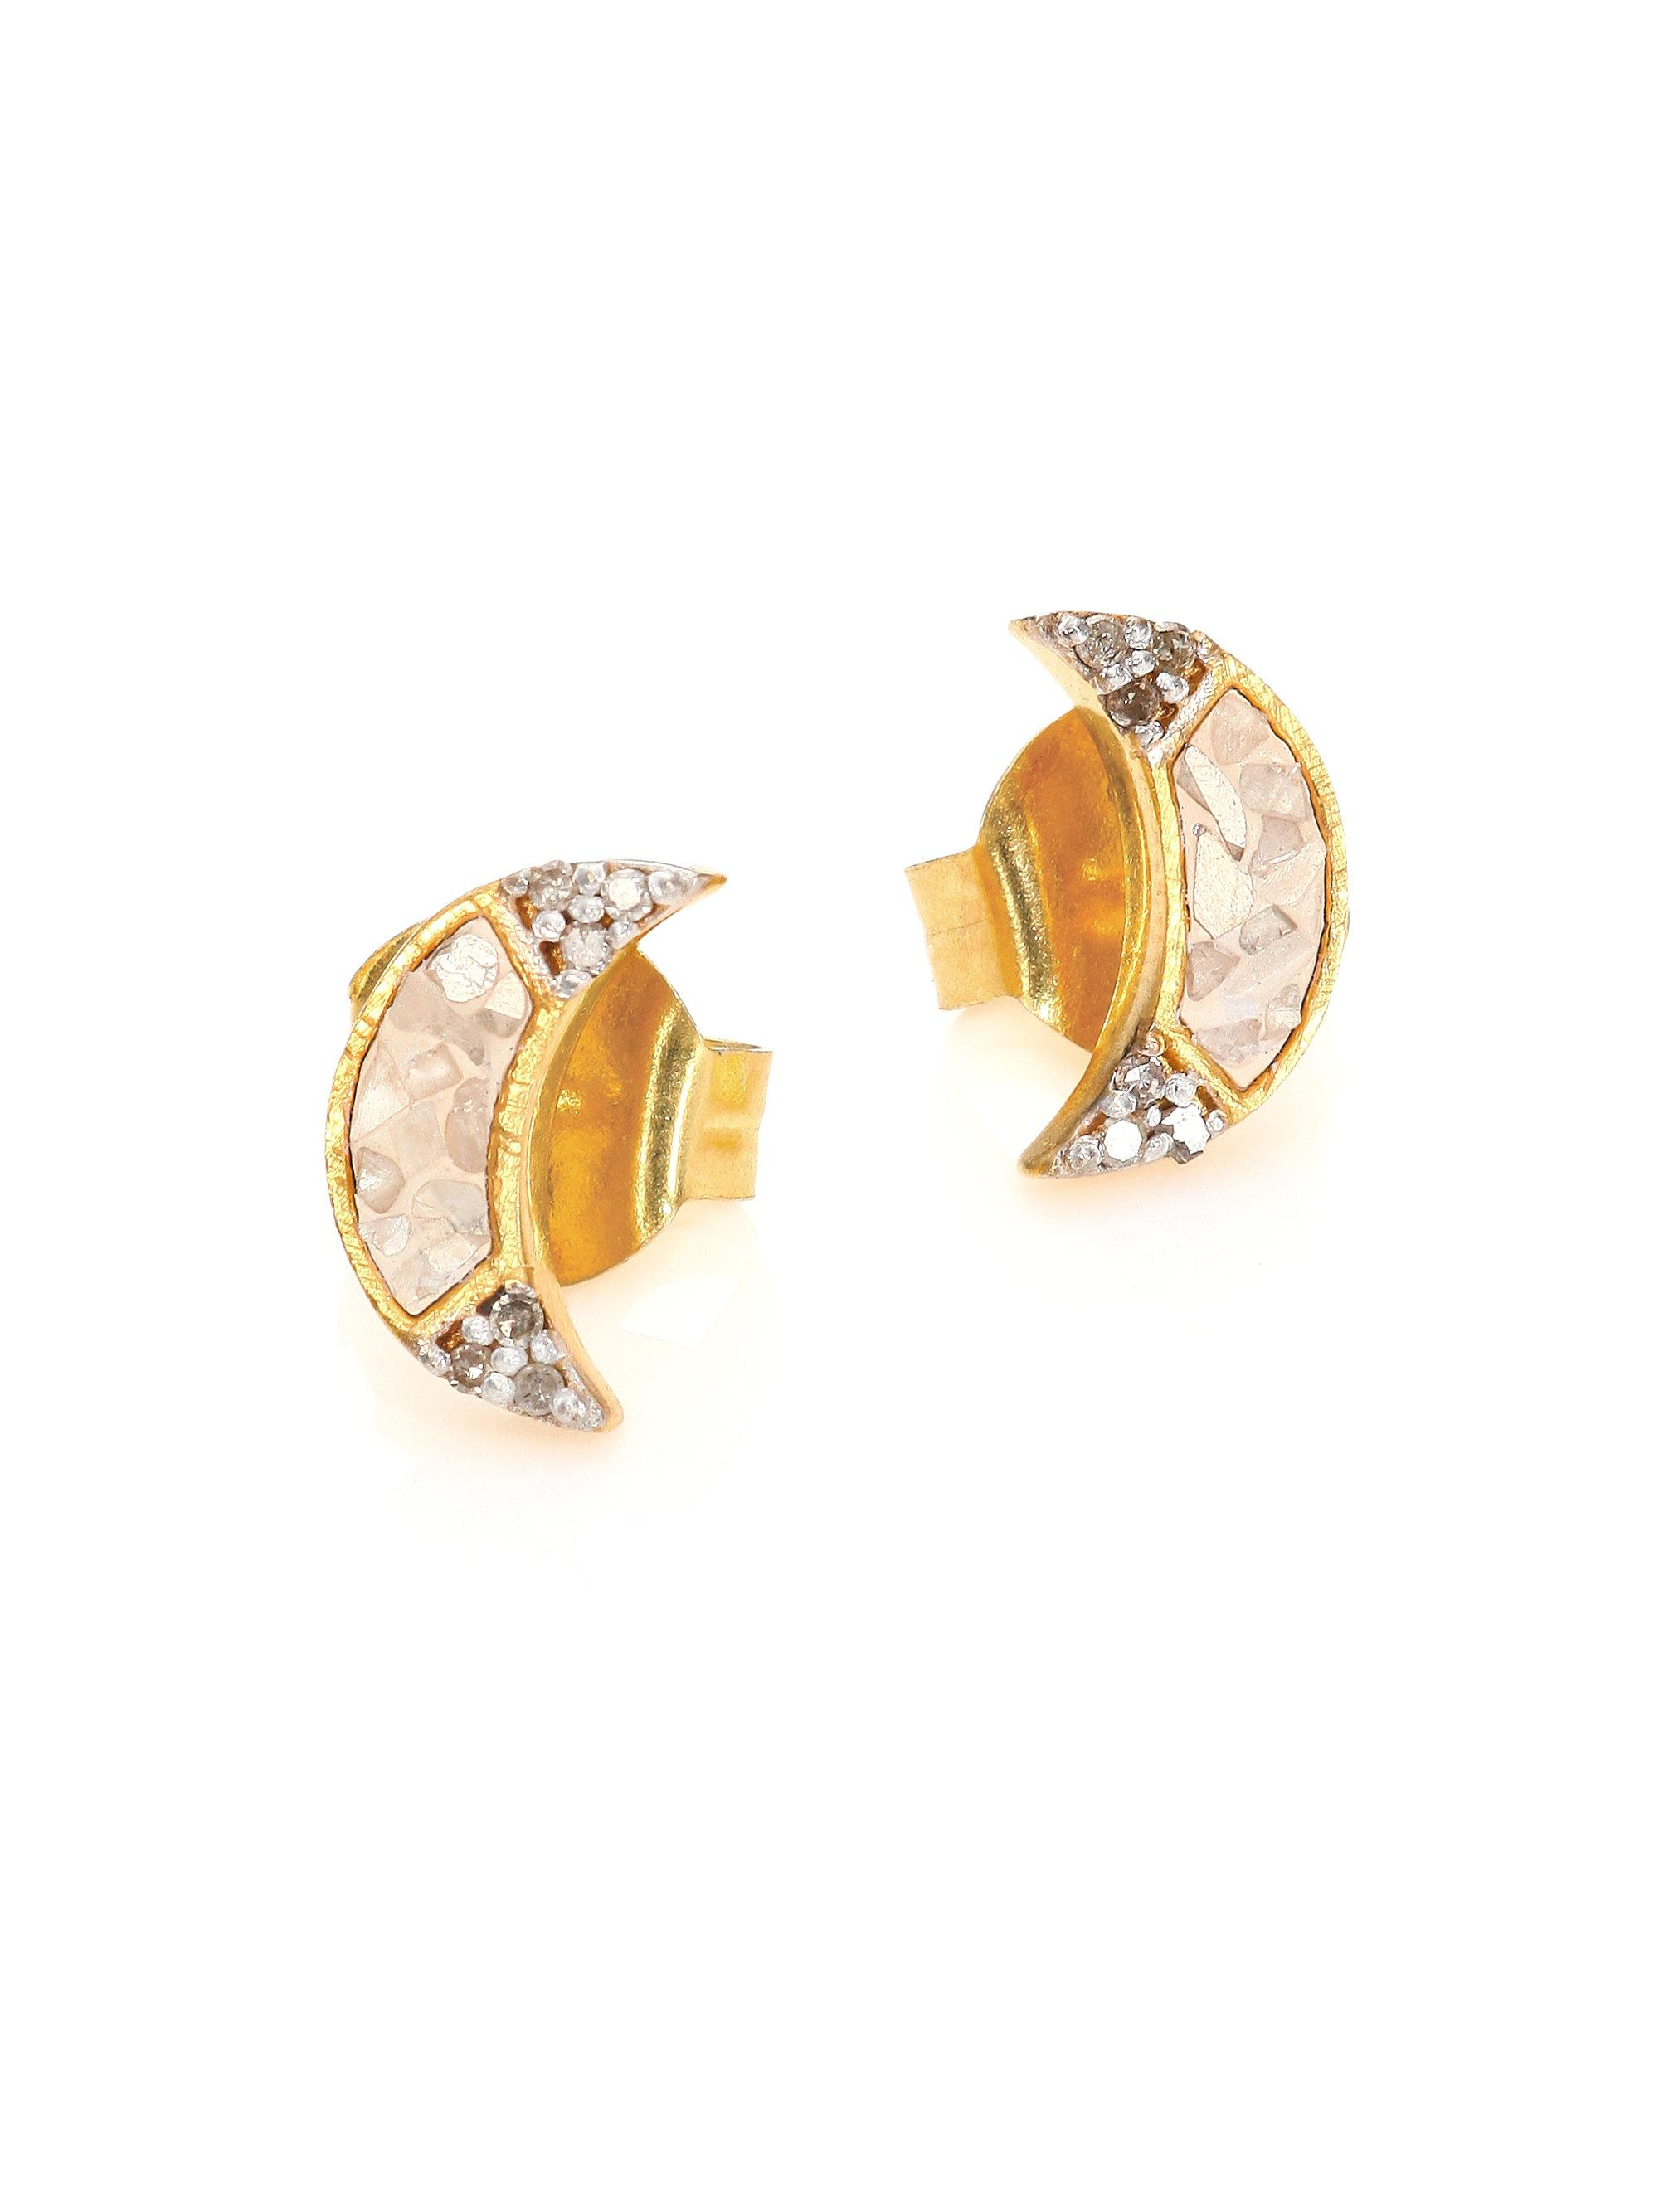 press of diamond collection champagne george lifetime drop earrings decorative your worthy